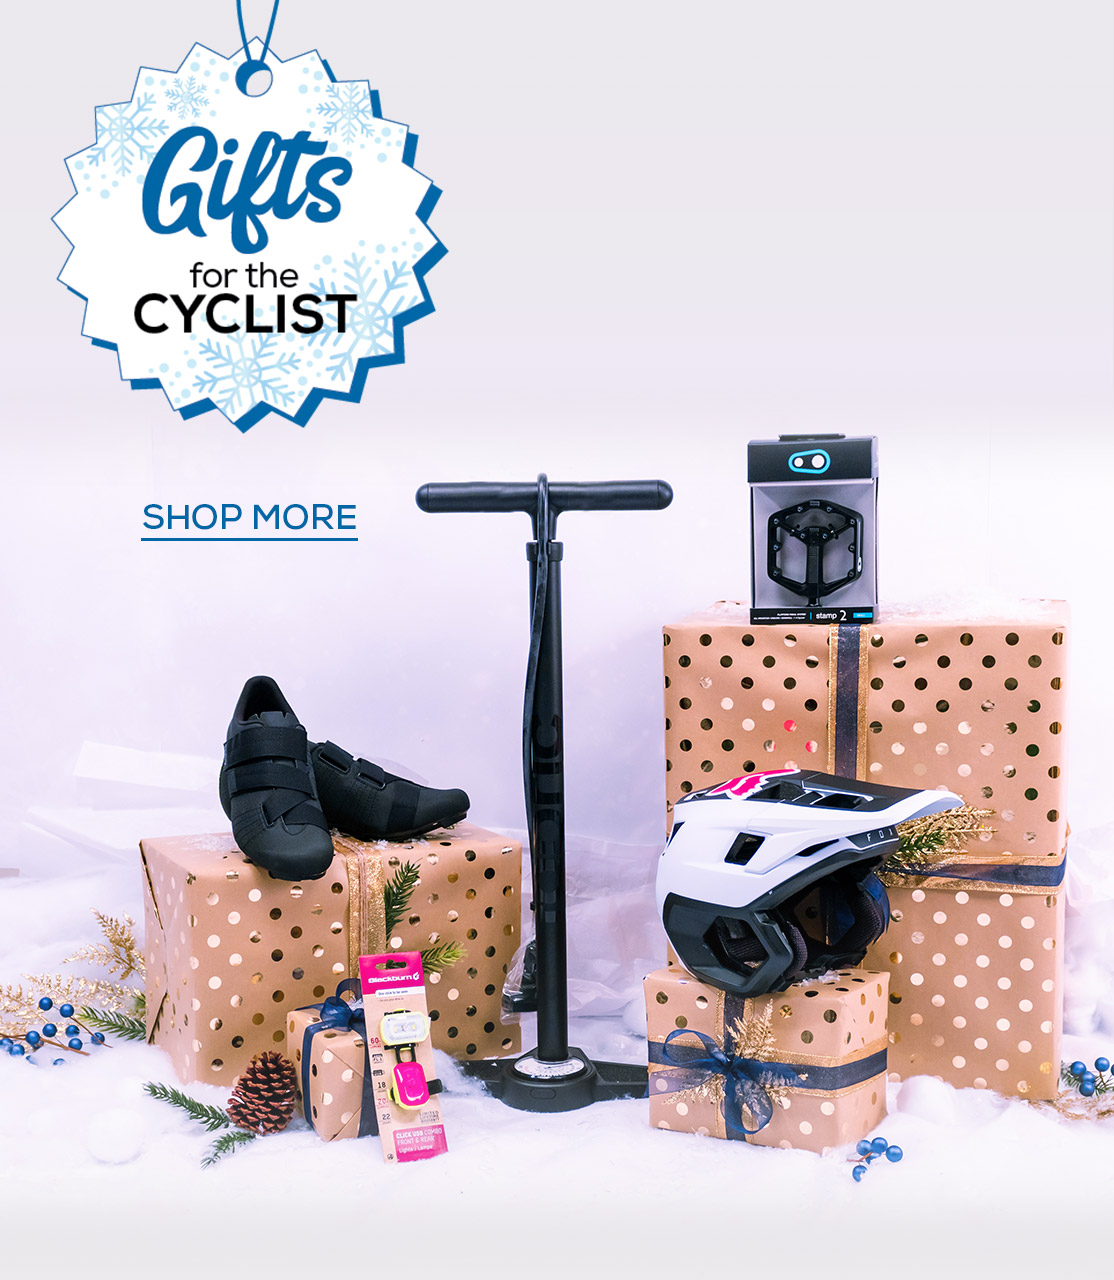 Gifts Cyclists